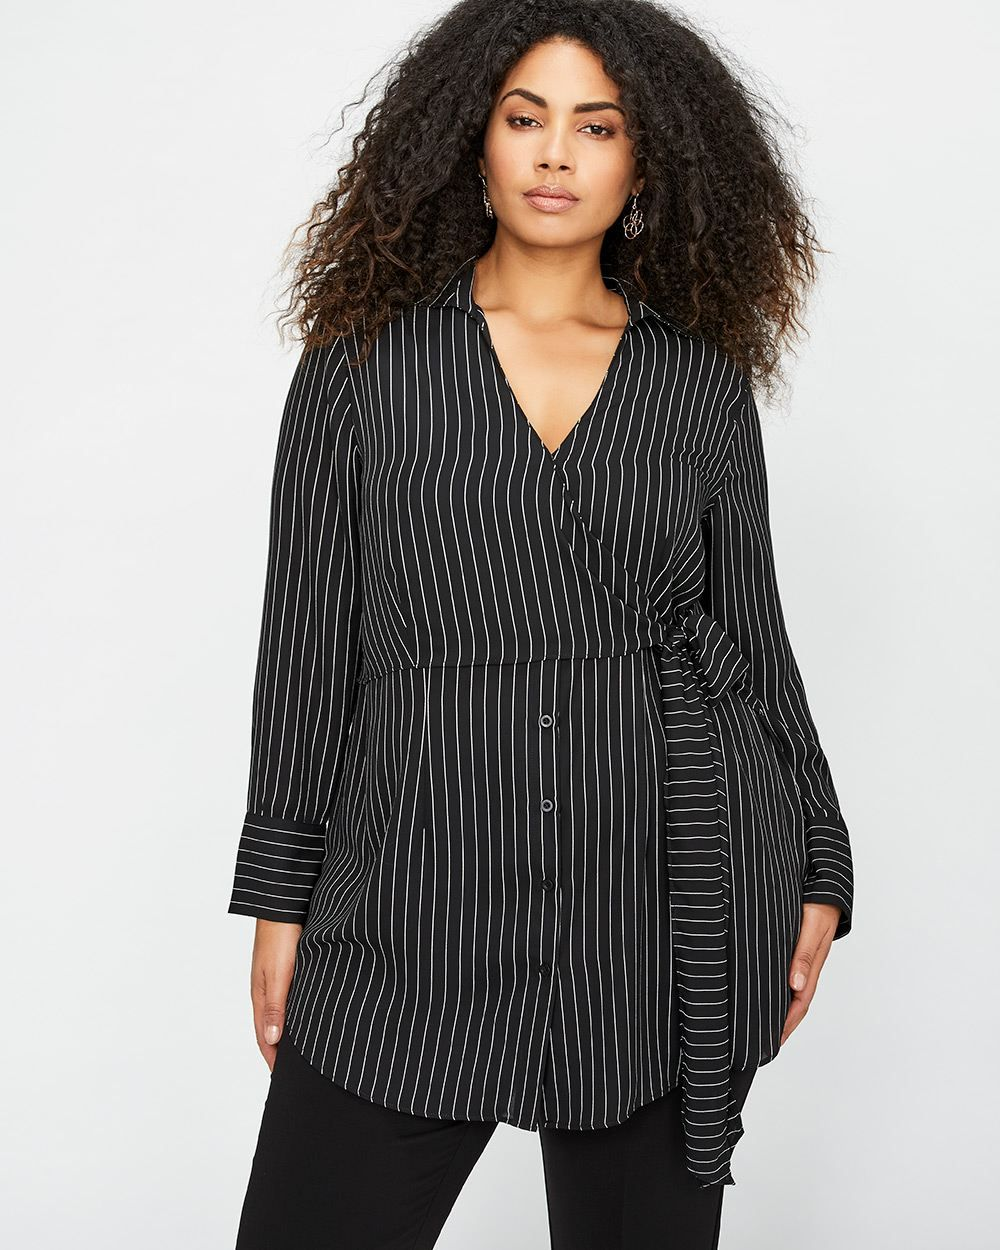 566ed583b6f Opt for a refined look with this plus size striped wrap tunic by Michel  Studio. Wear it with black leggings and heels for a feminine look.